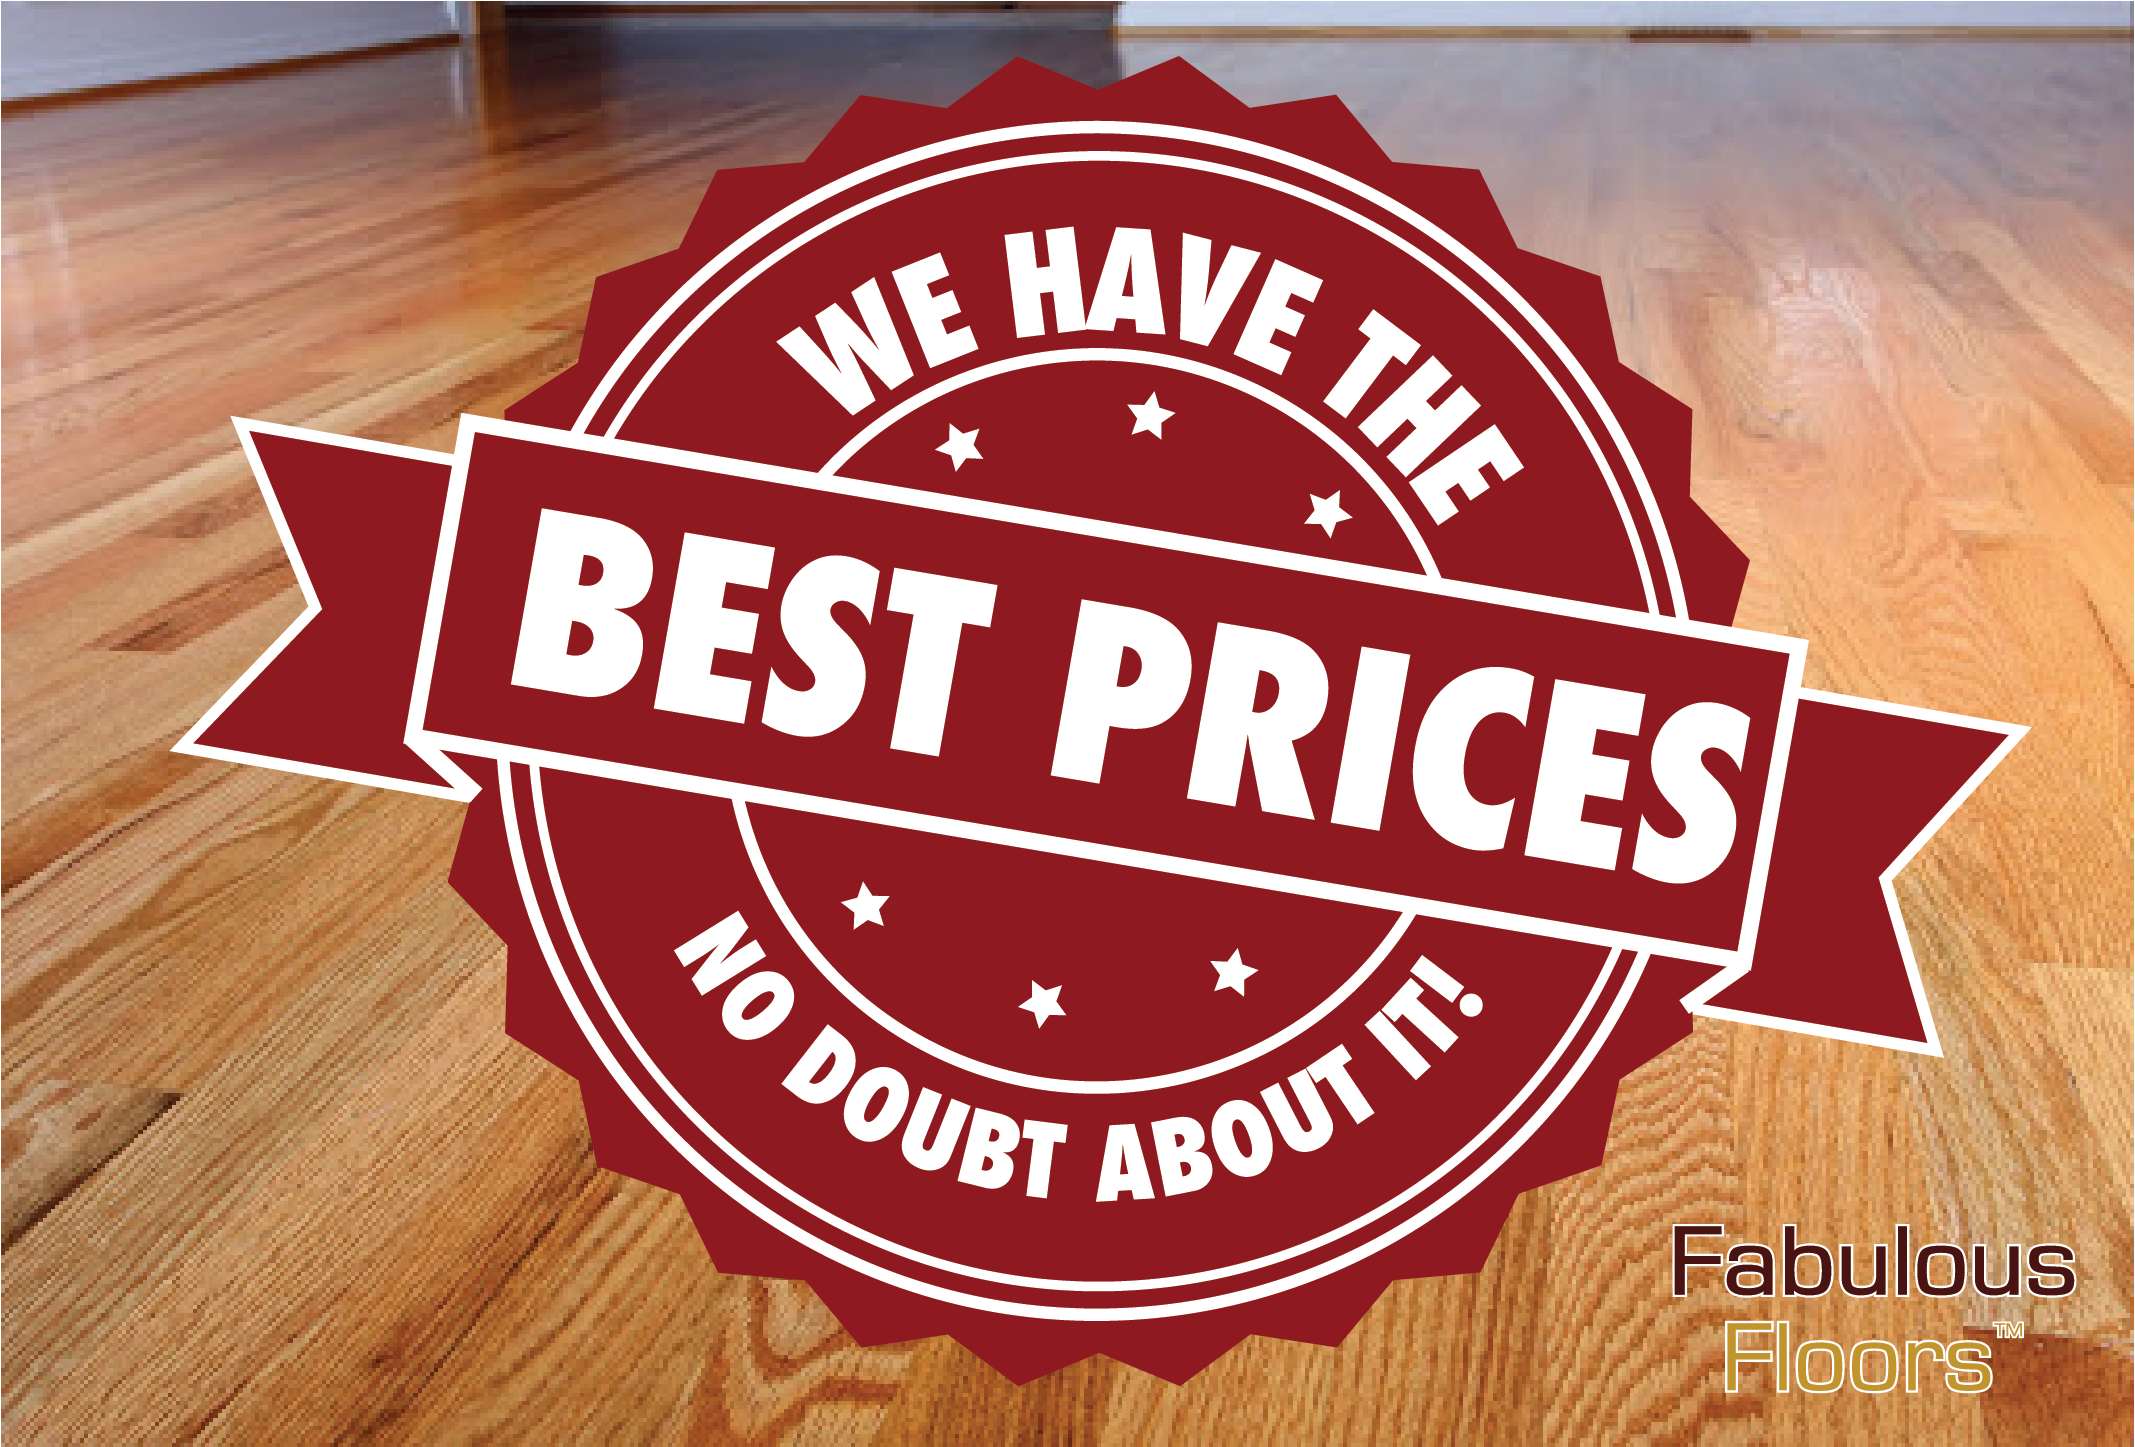 A graphic saying that we have the best prices no doubt about it